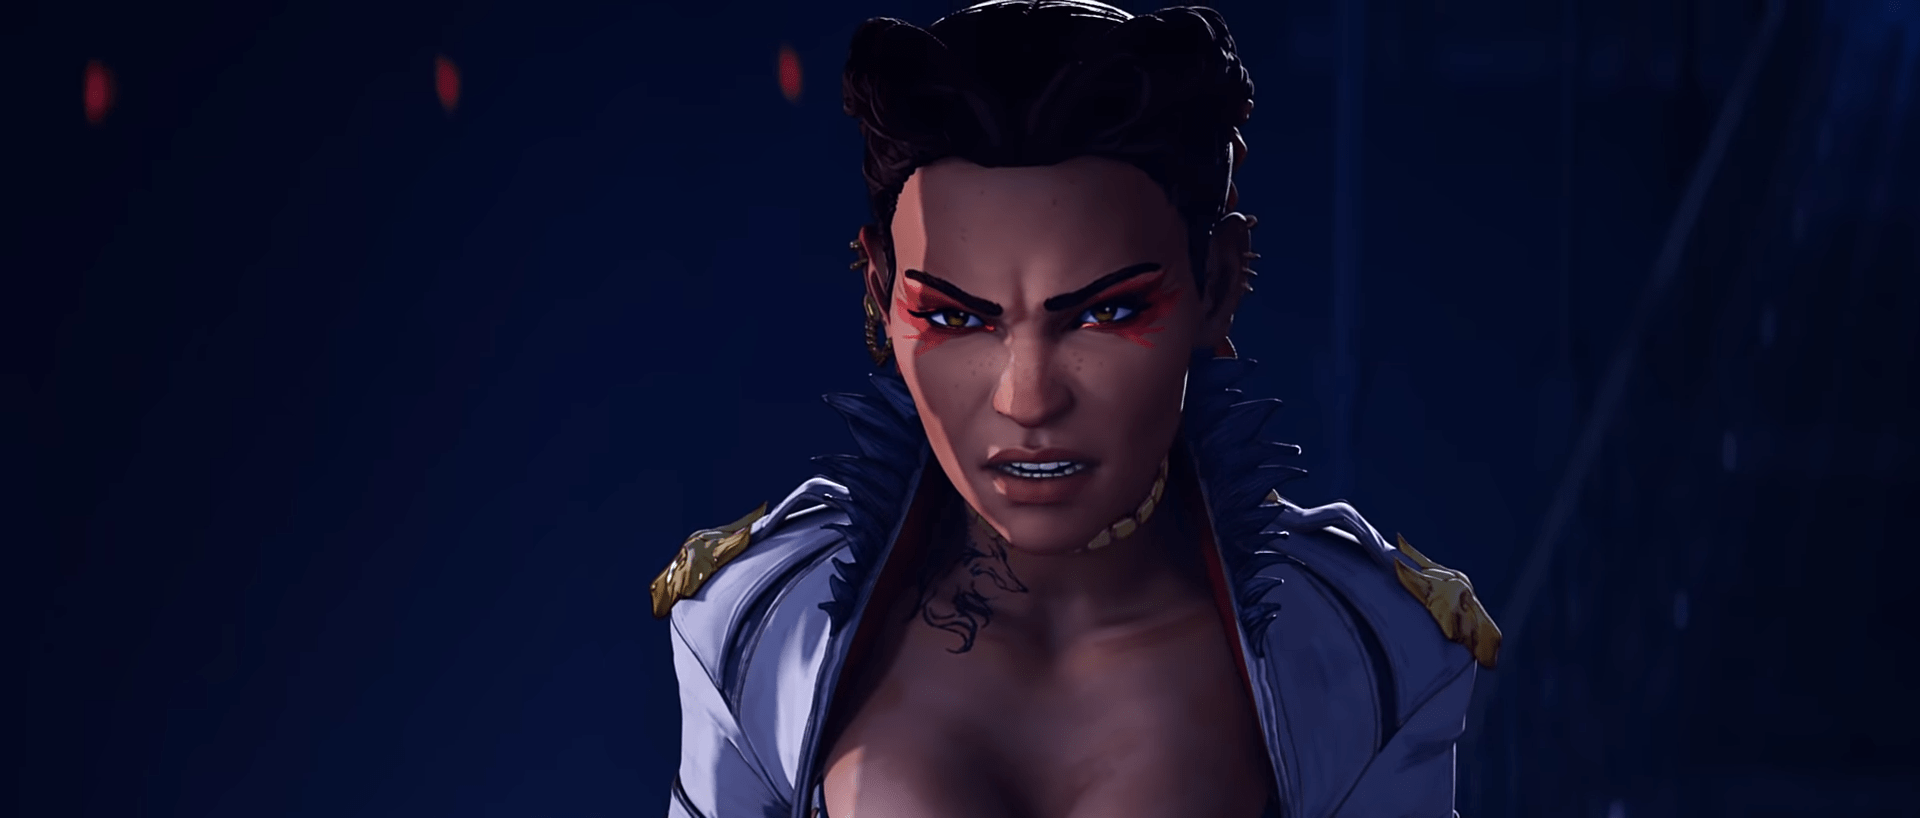 Apex Legends Season 5 Fortune's Favor Launch Trailer – Loba On A Mission To Take Down Revenant